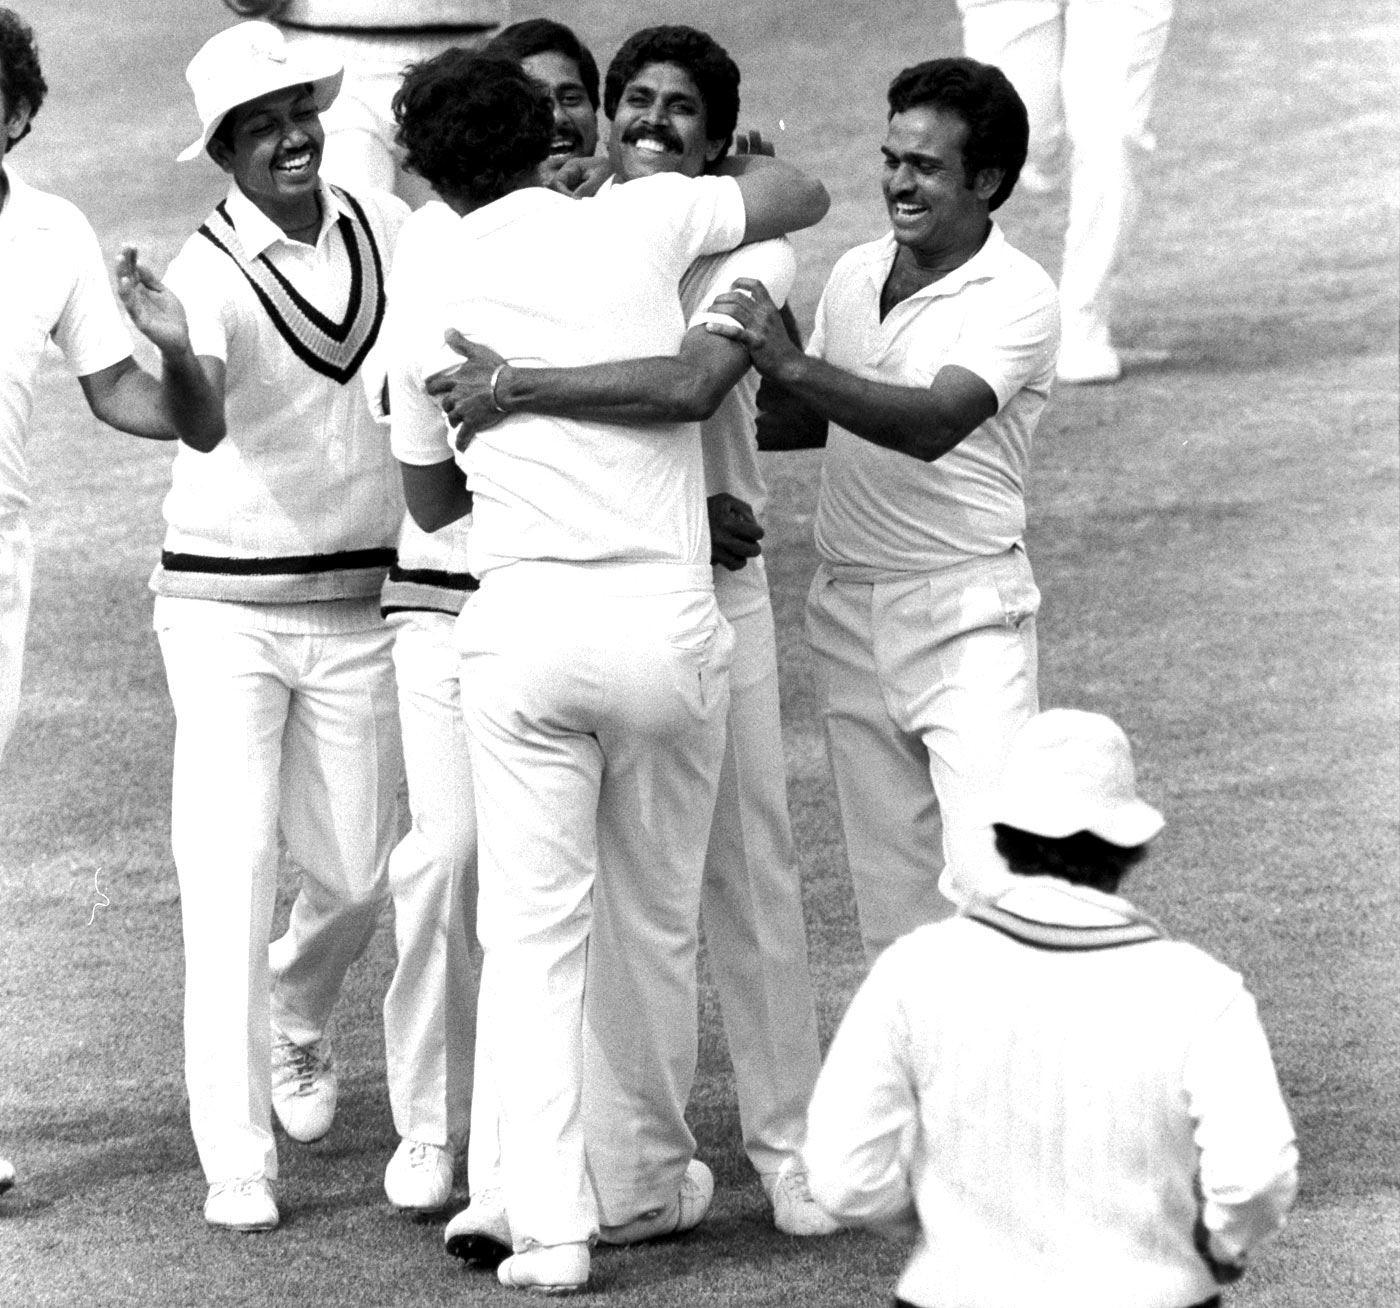 Kapil Dev's self-belief had a ripple effect not just on his team-mates but on Indian cricket